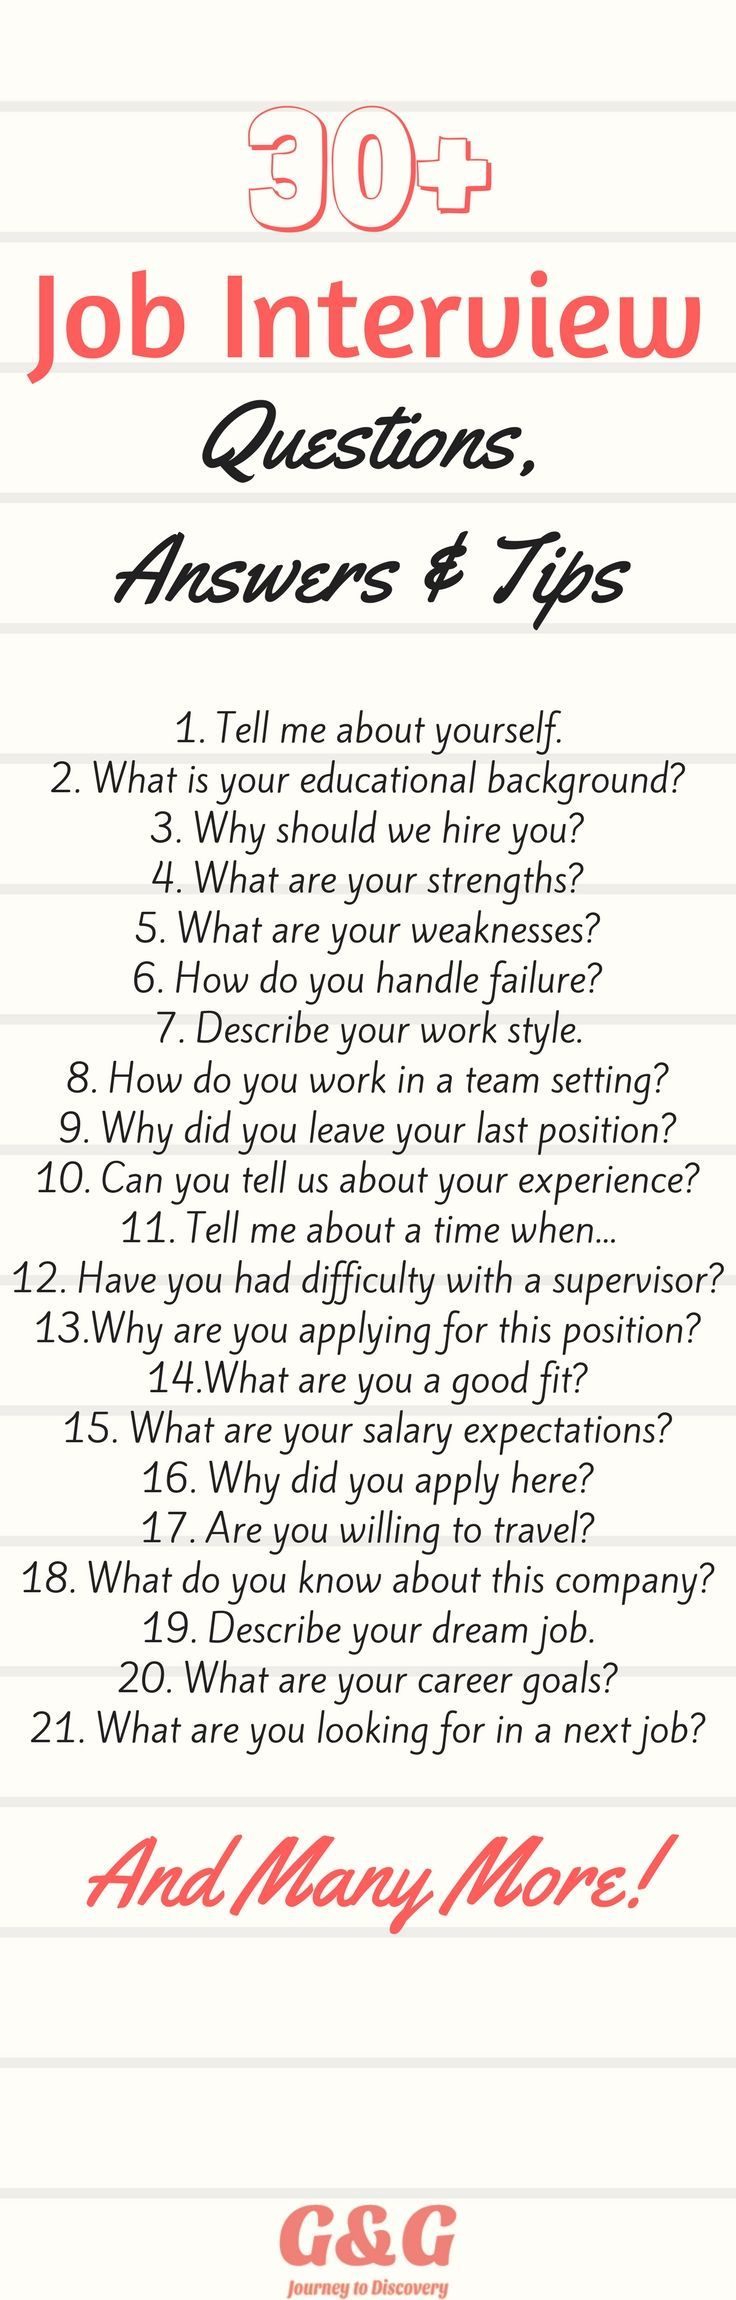 30+ Job Interview Questions, Answers and Tips for those seeking to rock their next job interview.